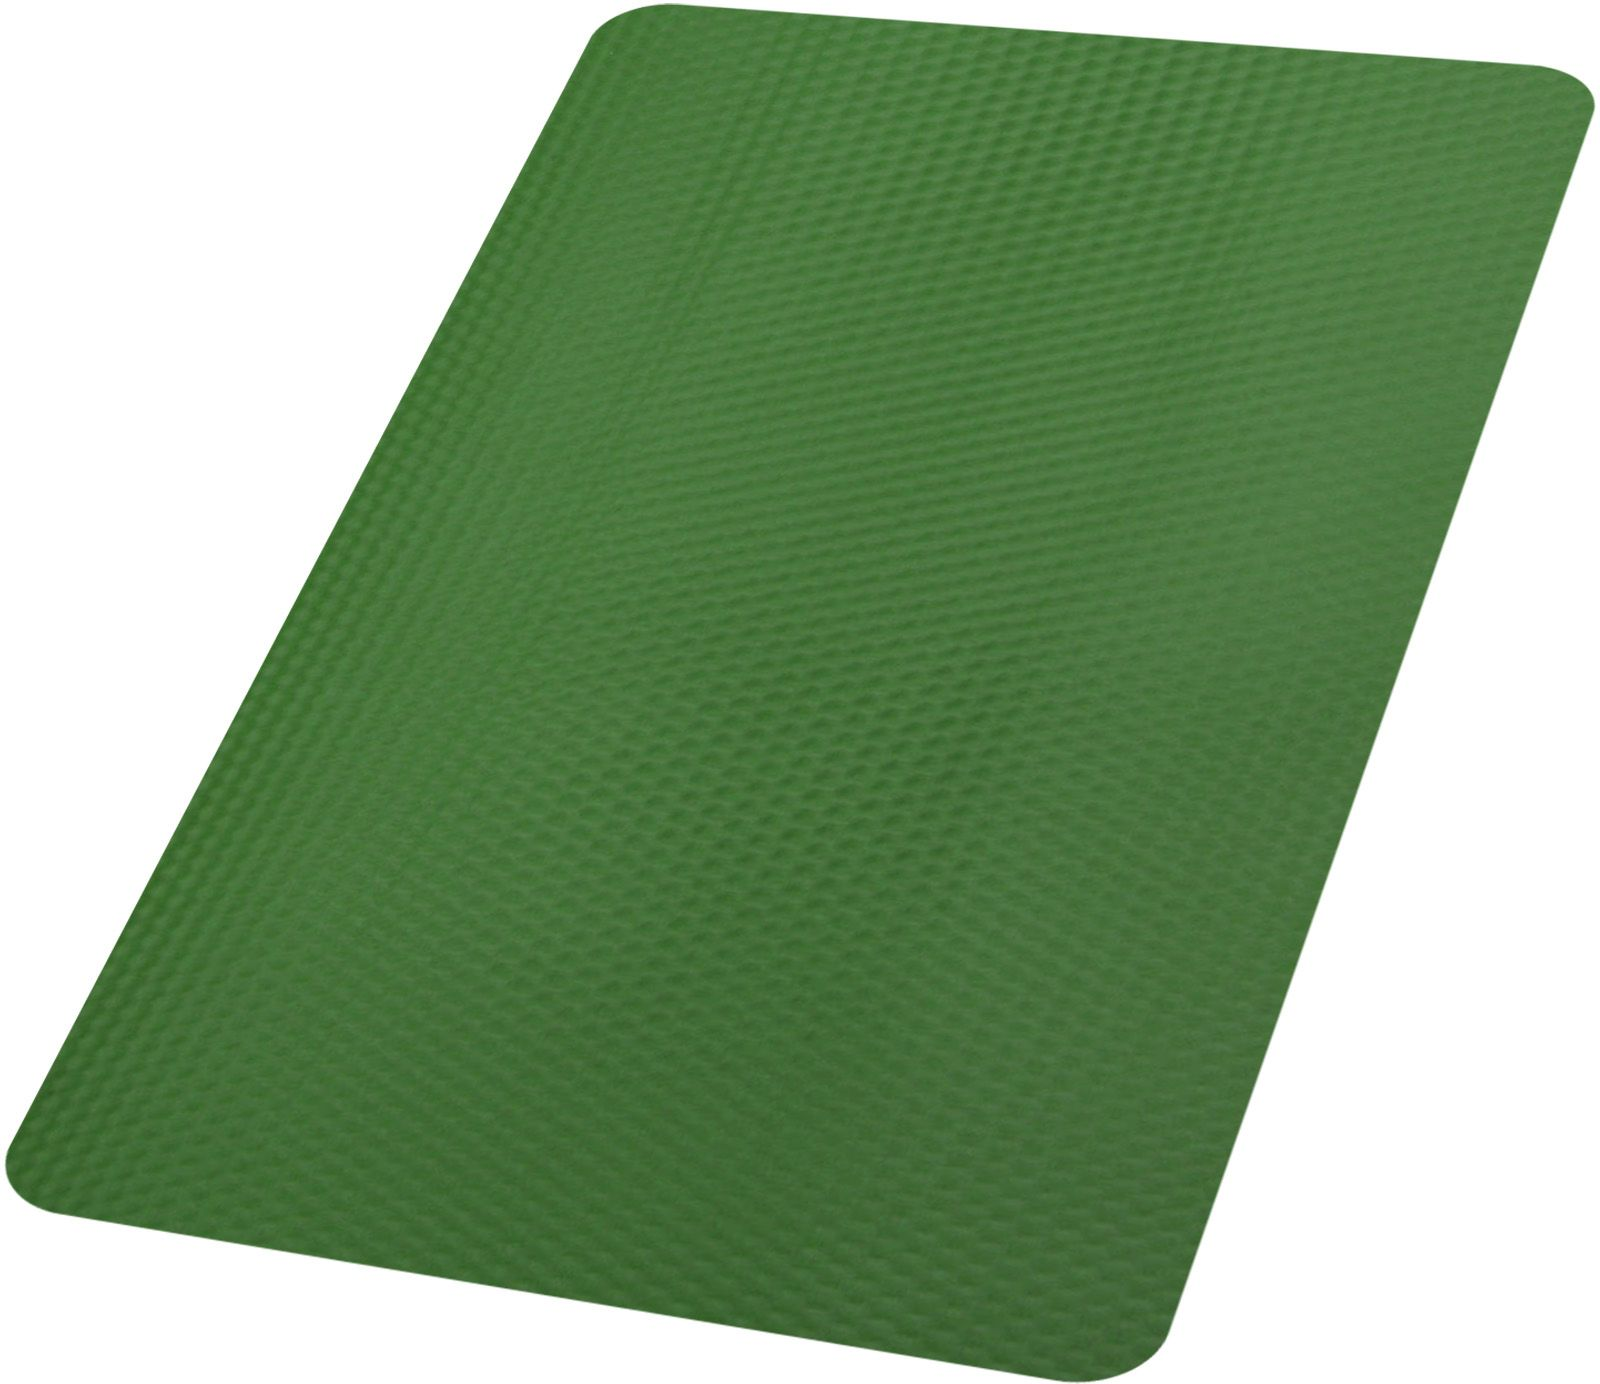 Venture Outdoors Campsite Foam Floor Mat